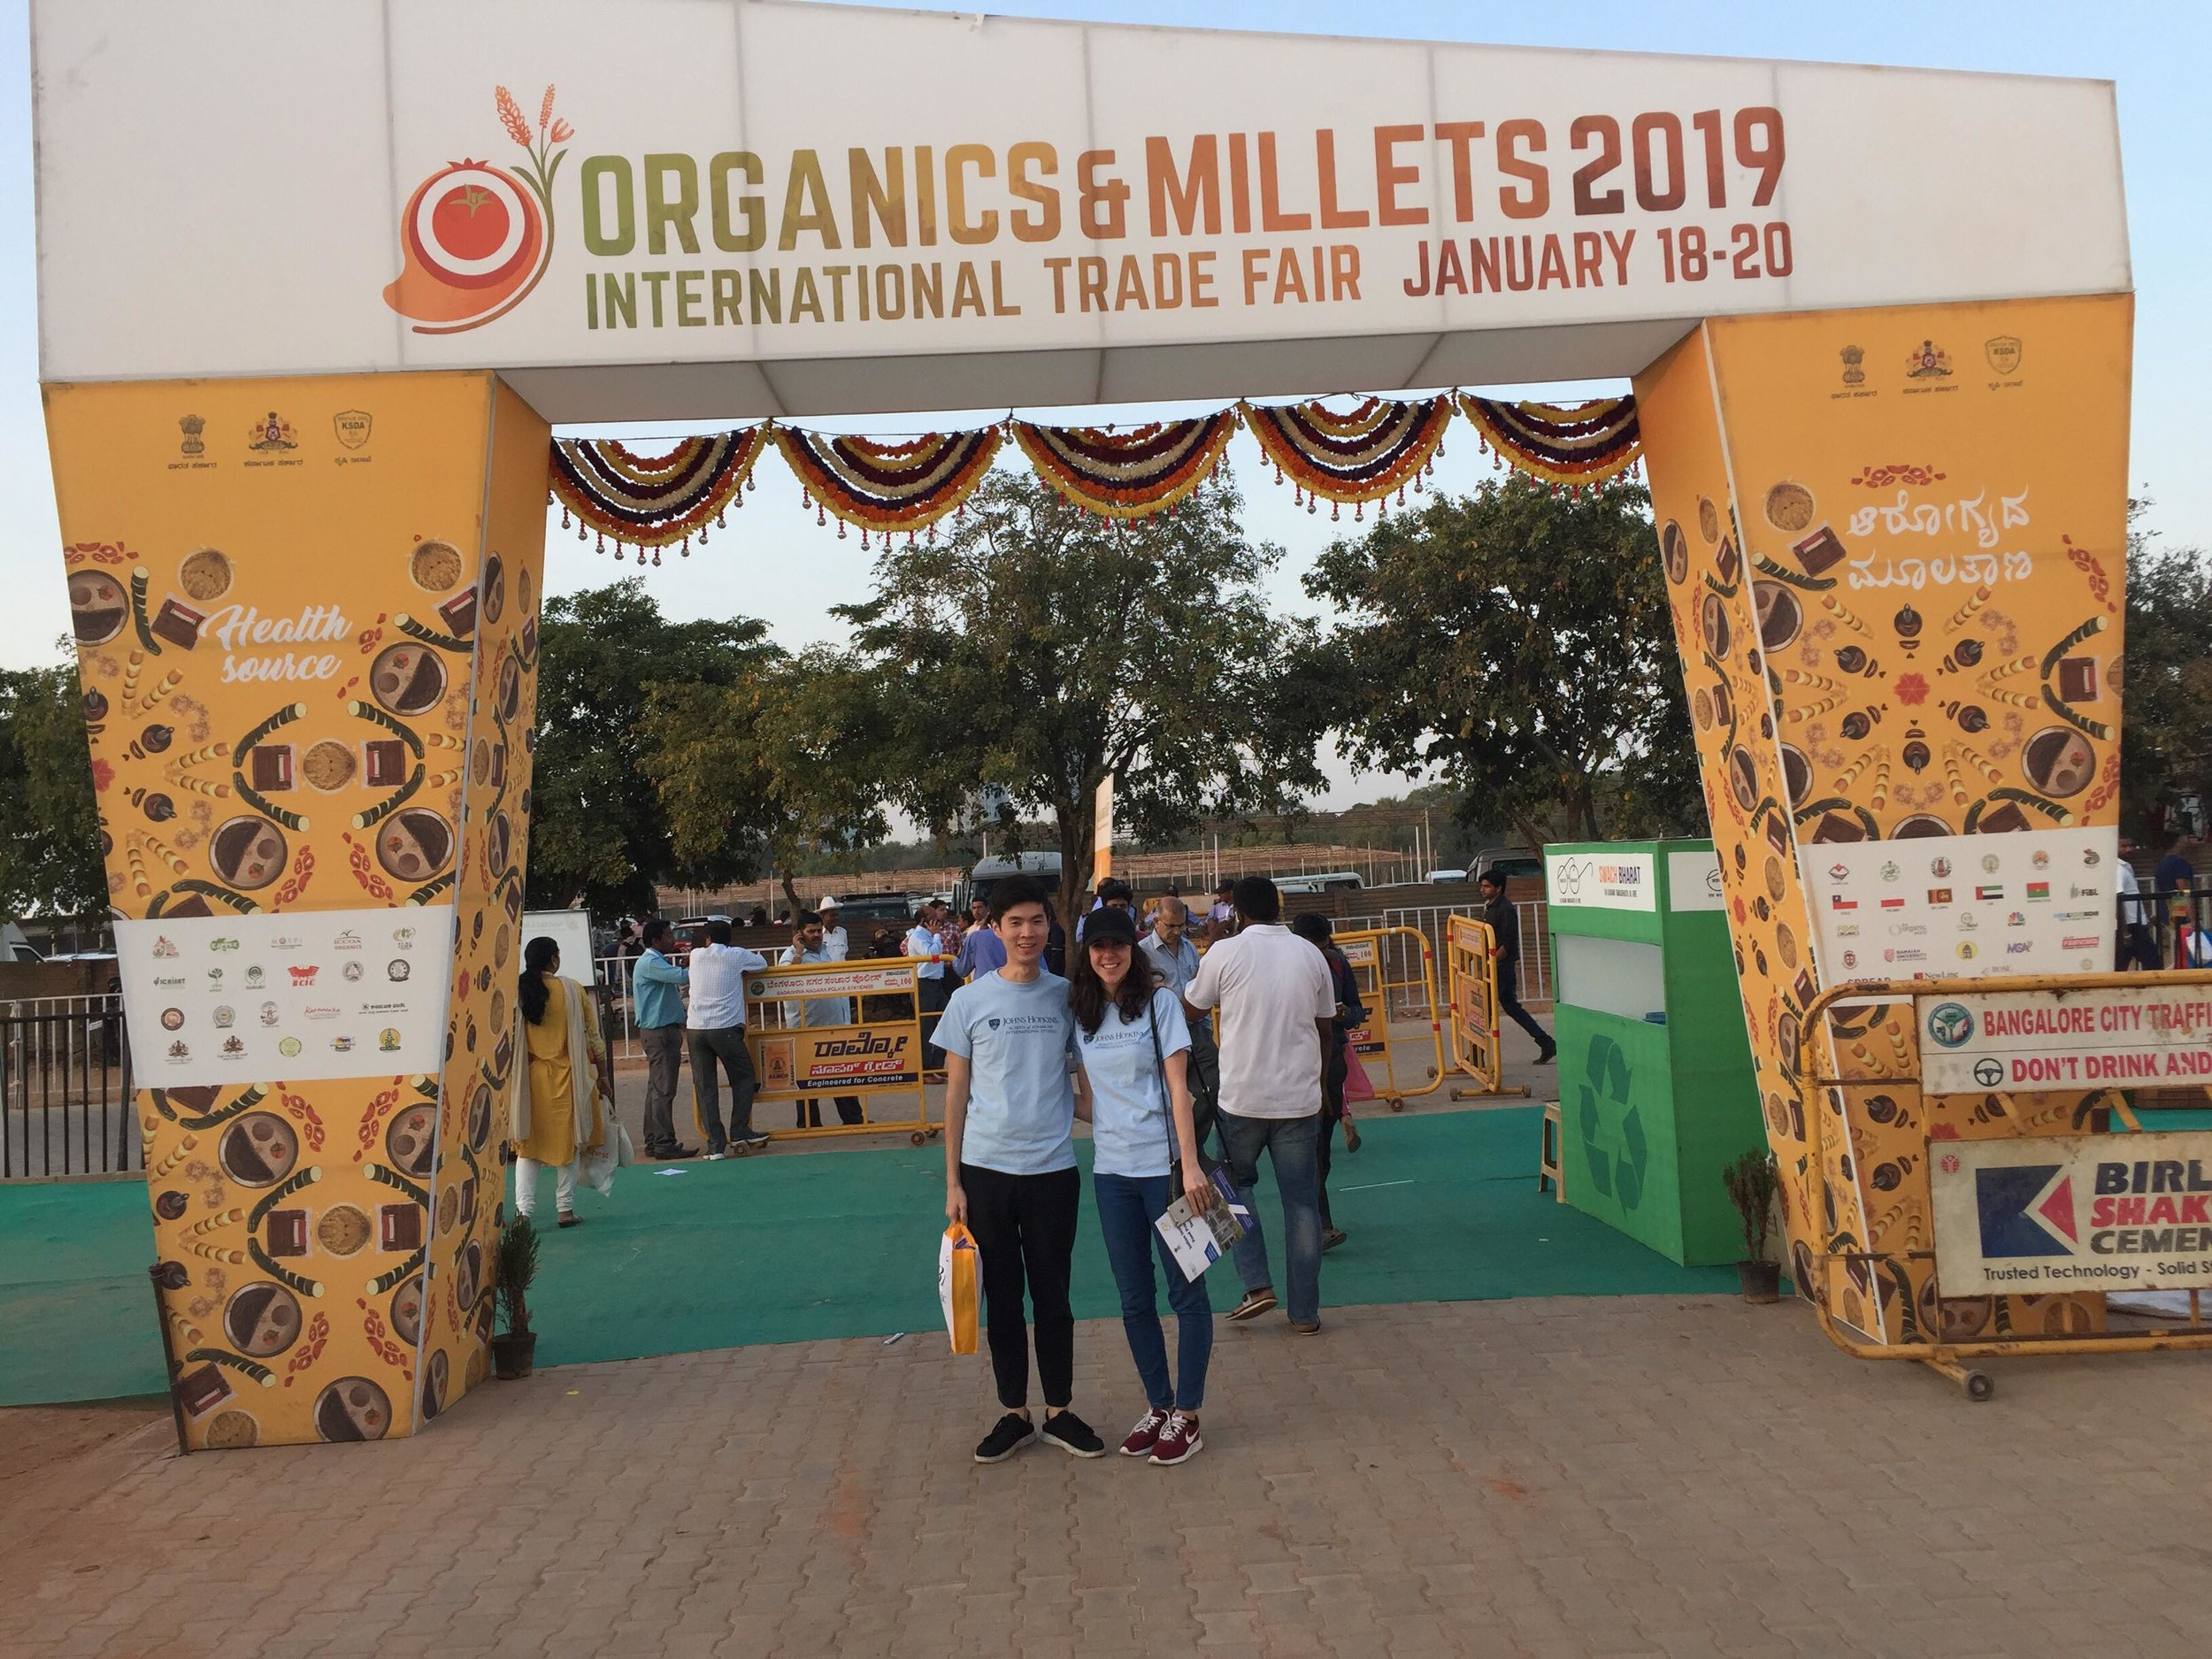 Don and Milena visit the Organics and Millets Conference 2019 to research new supply chain mechanisms and markets for millets